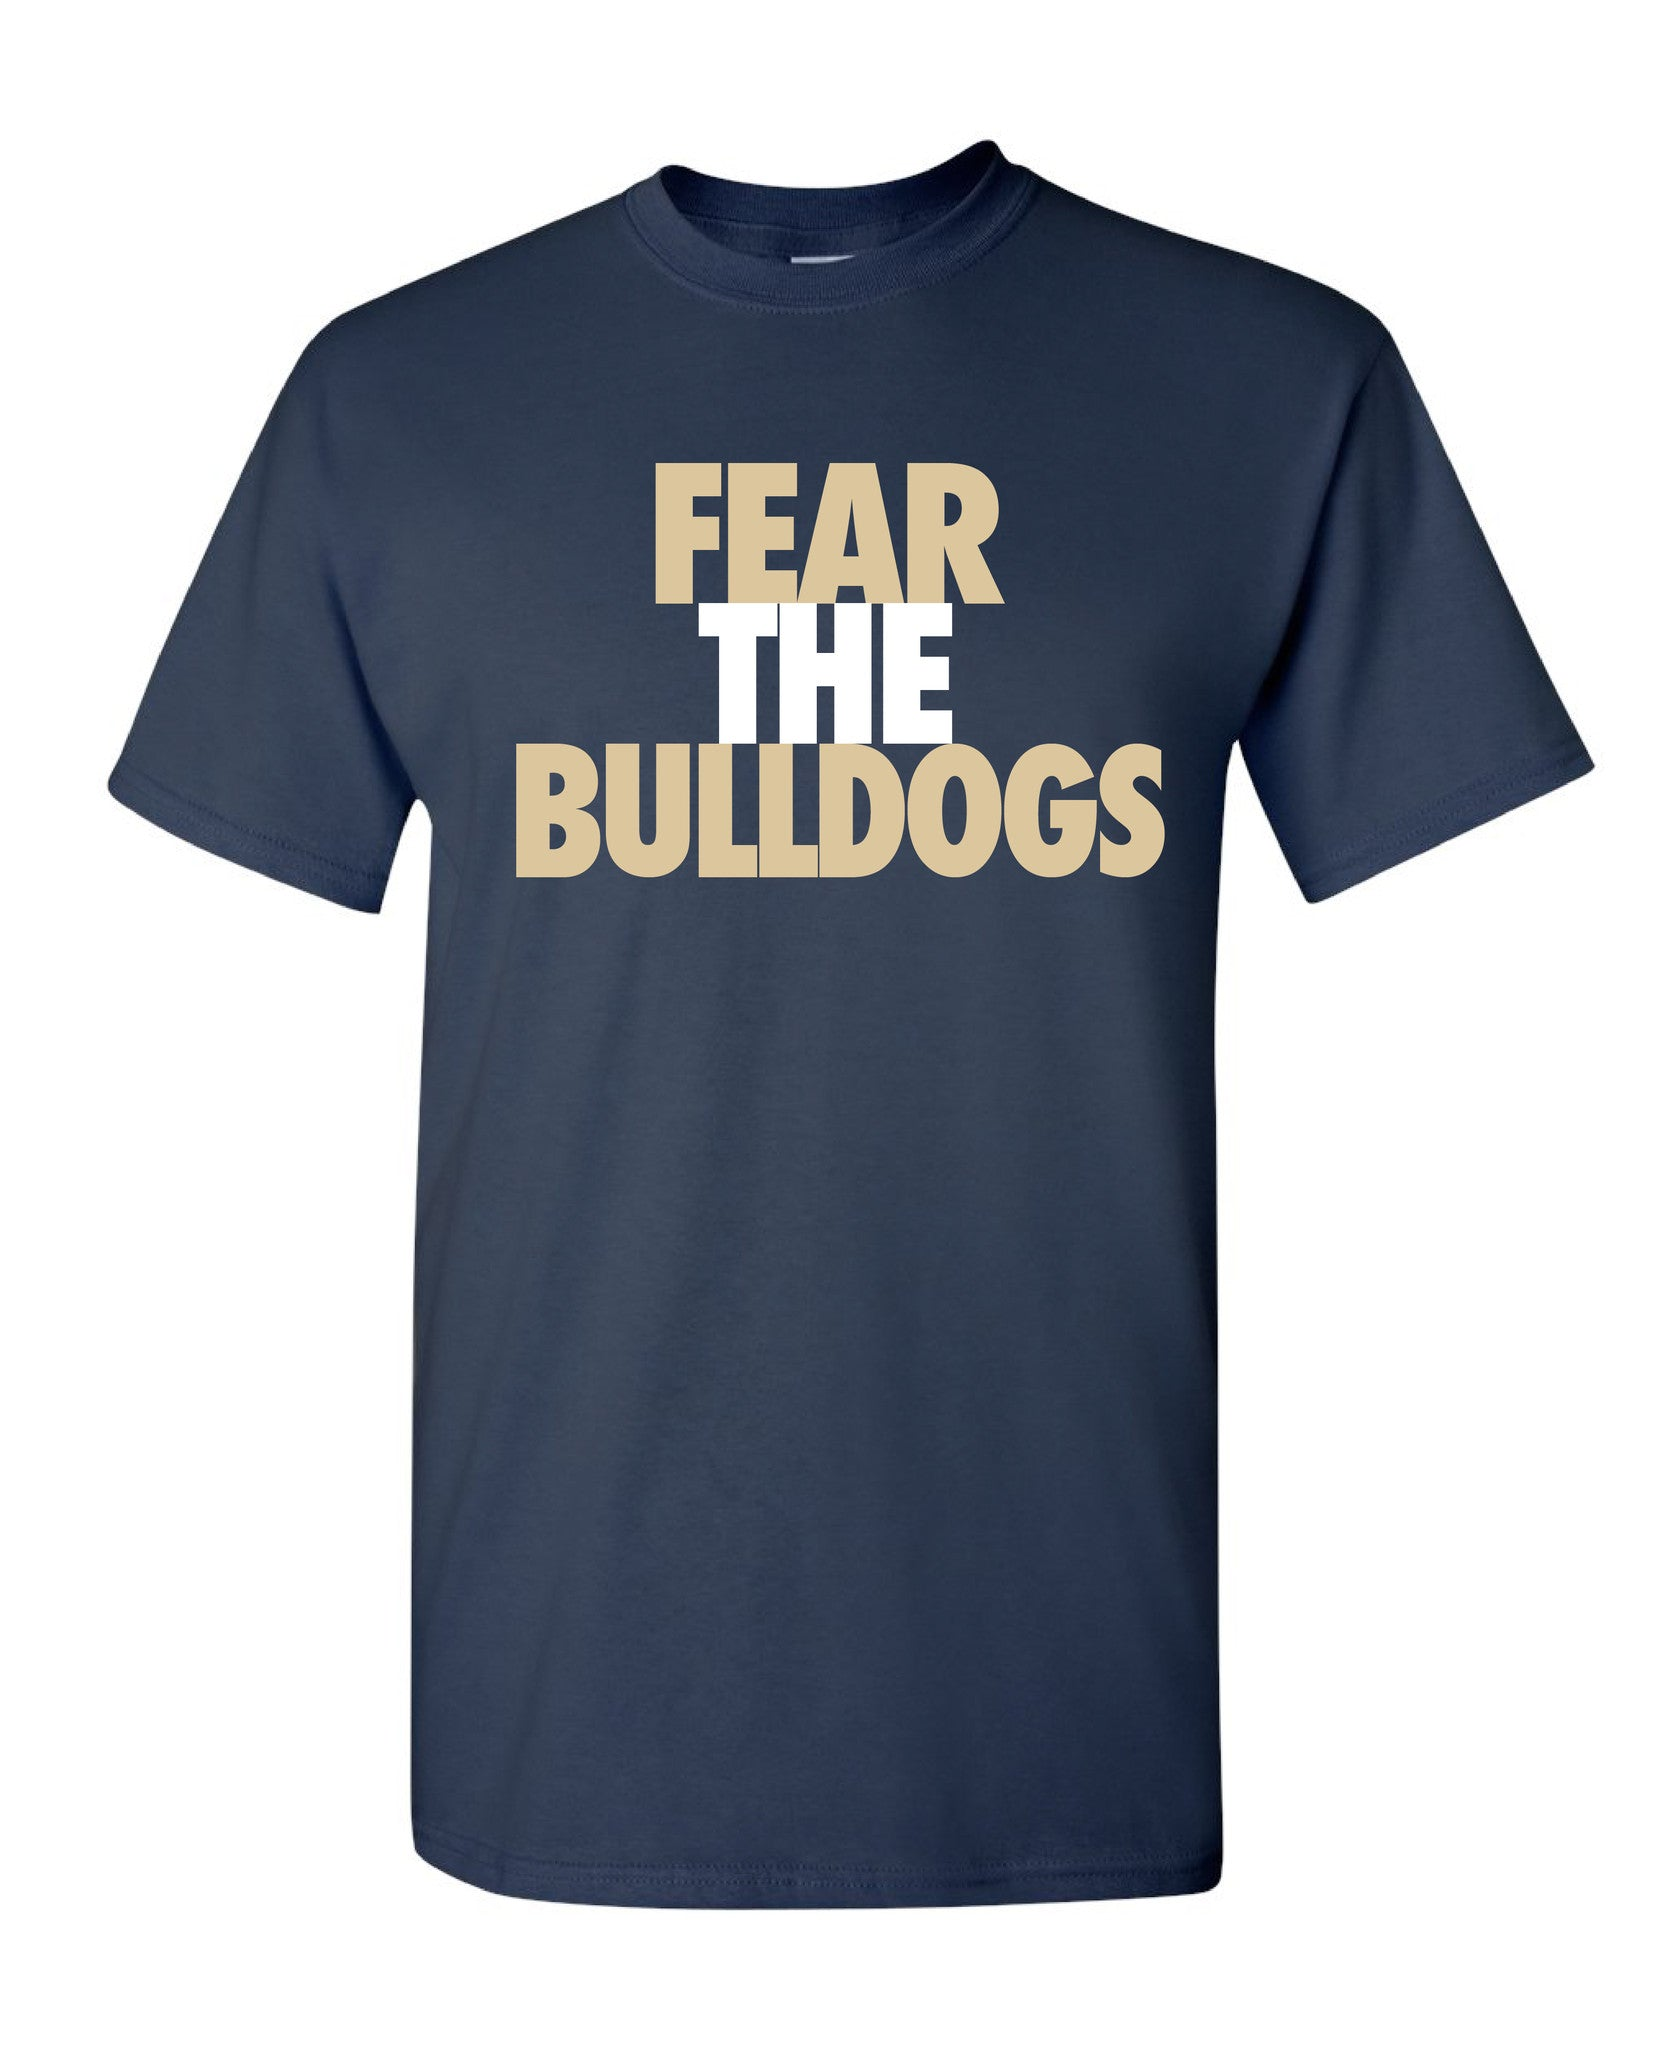 Youth Bulldogs Cotton T-Shirt - CB017